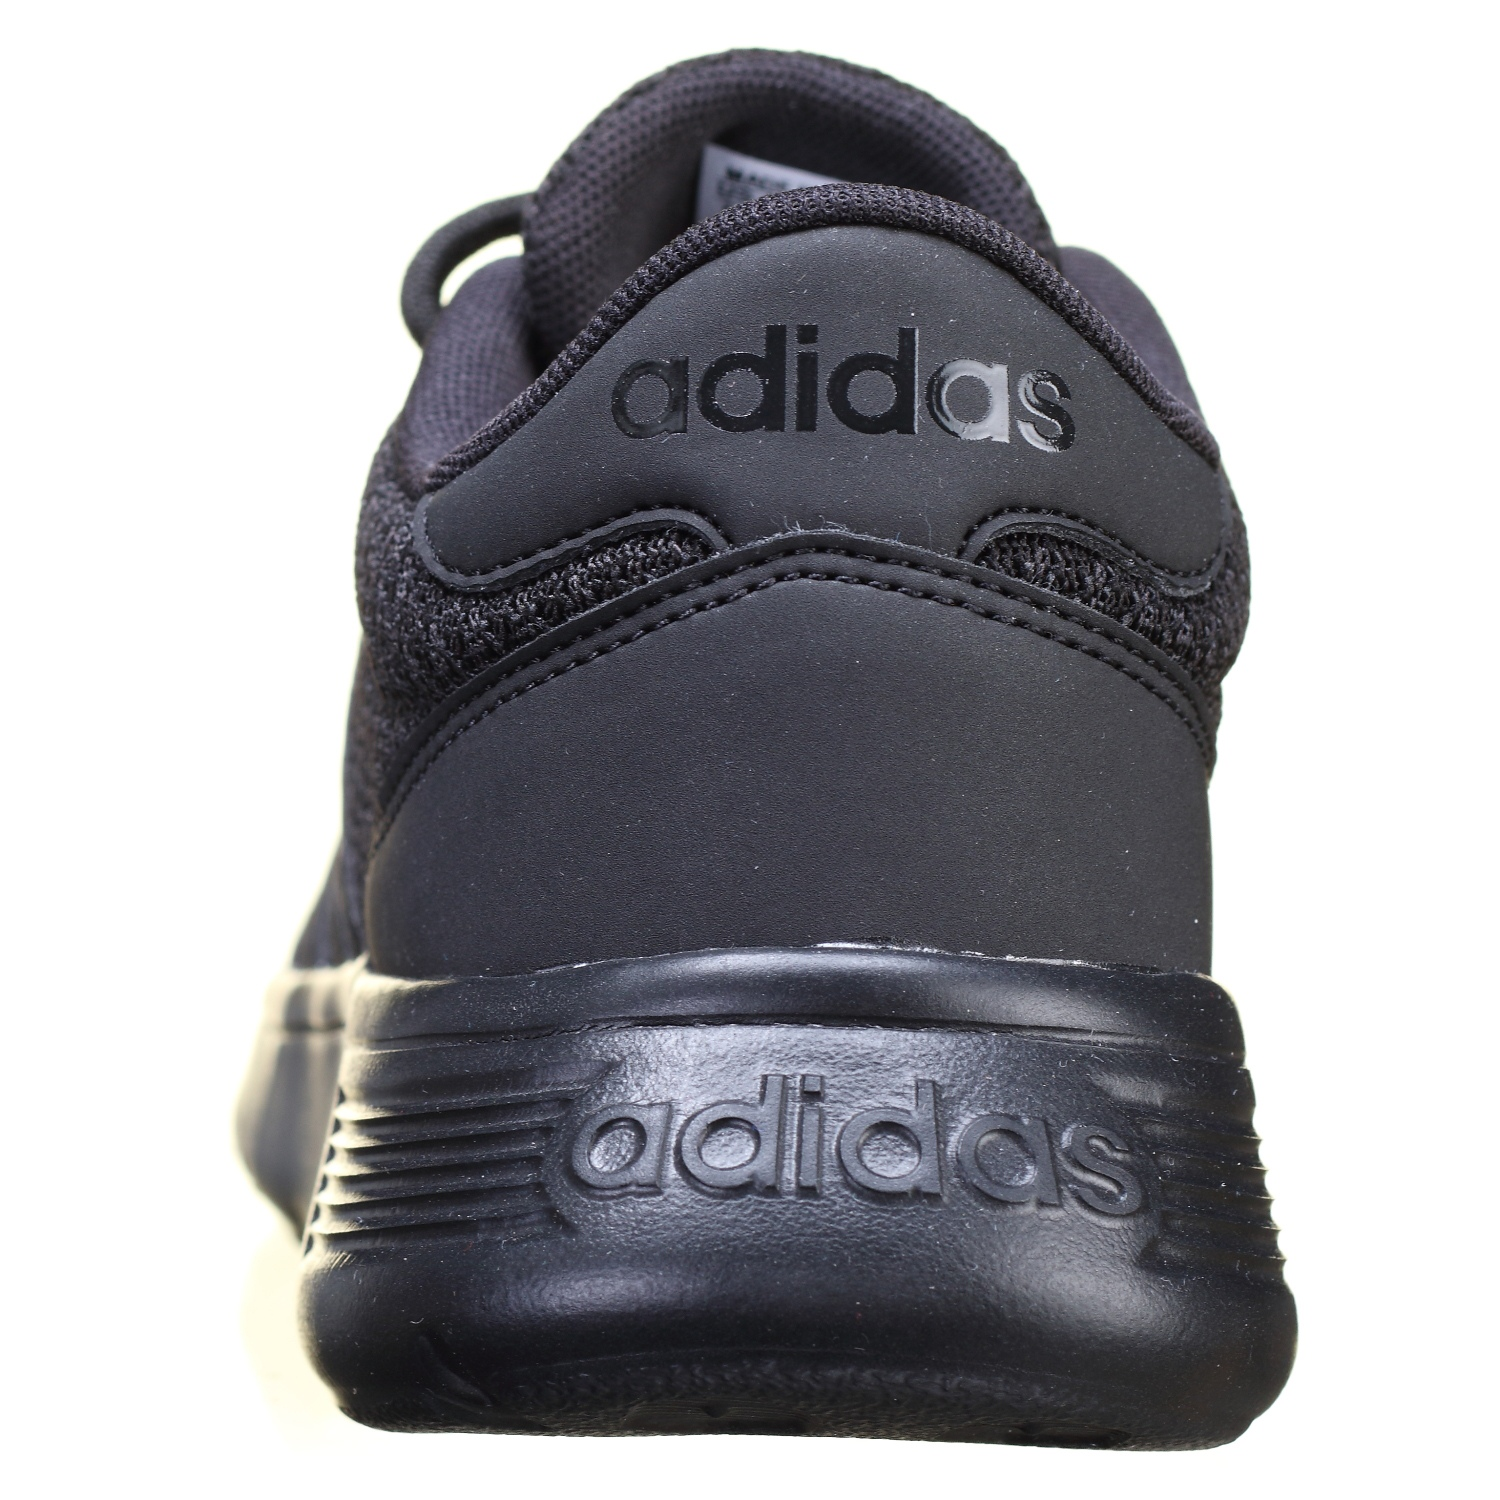 bfcc2e89c94 Adidas B74374 Men s Neo Lite Racer Shoes